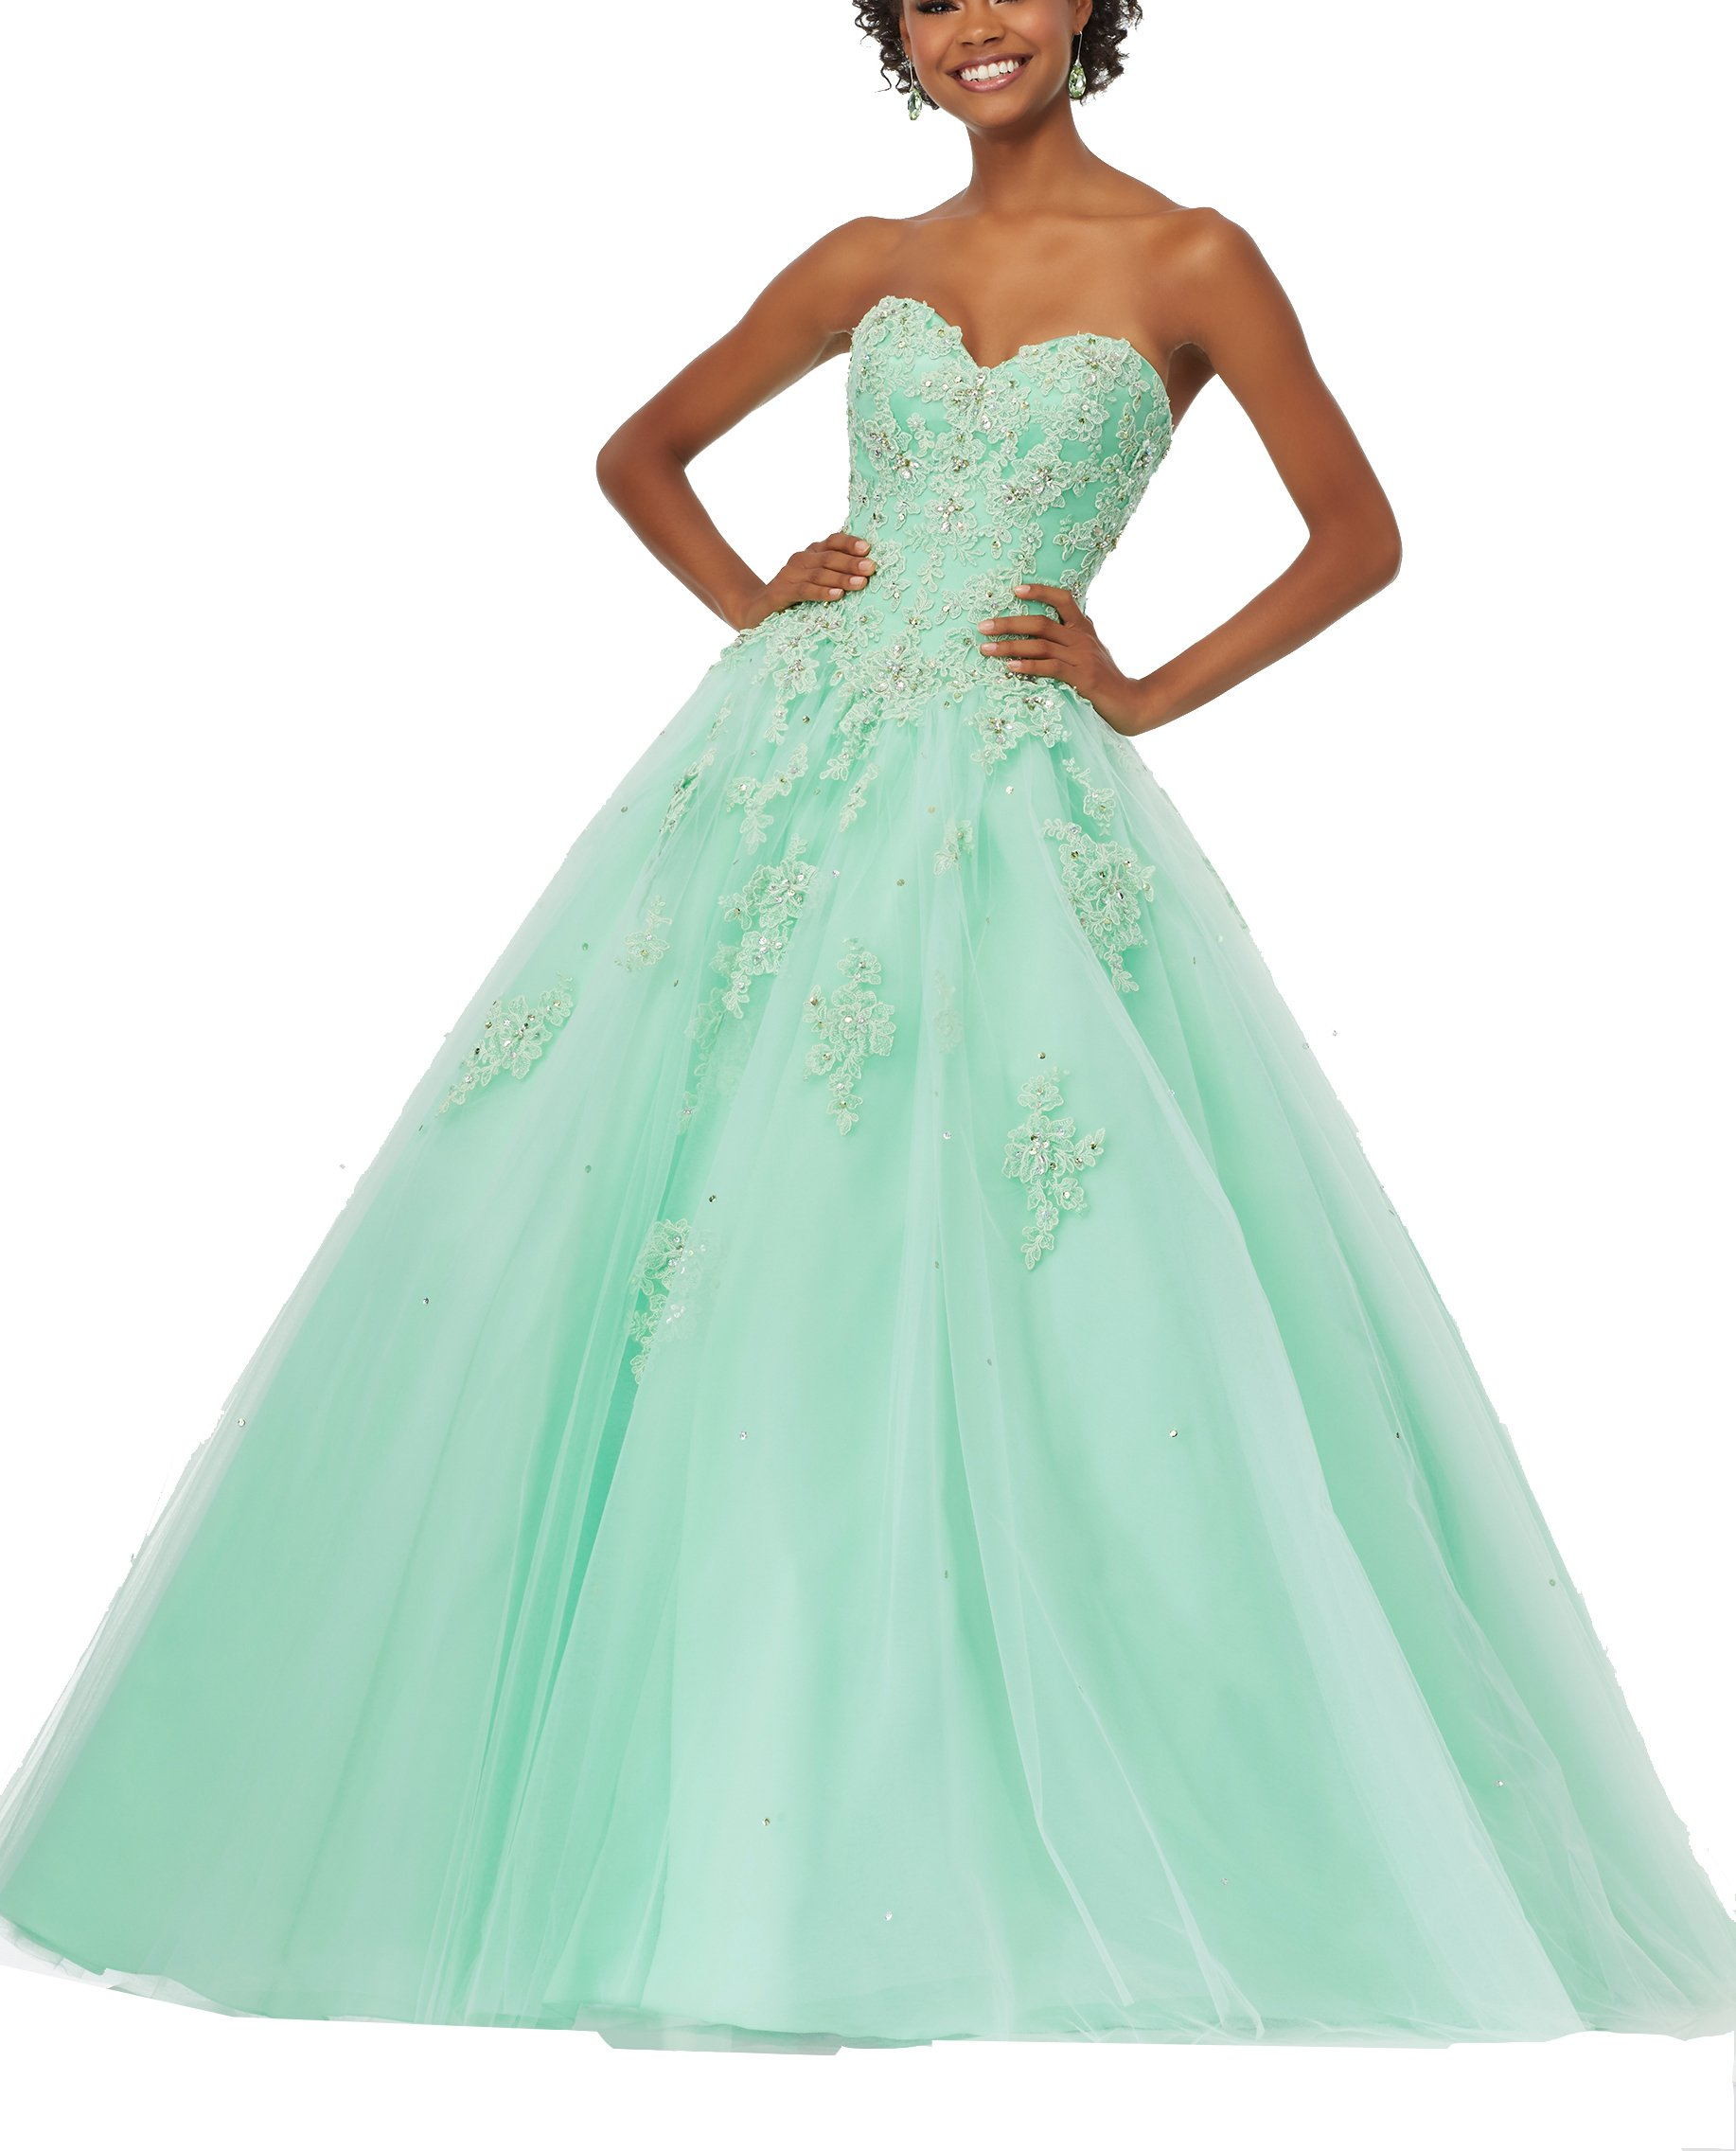 Elley Women's Sweetheart Lace Applique Strapless Sweet 16 Ball Gown Quinceanera Prom Dress Green US6